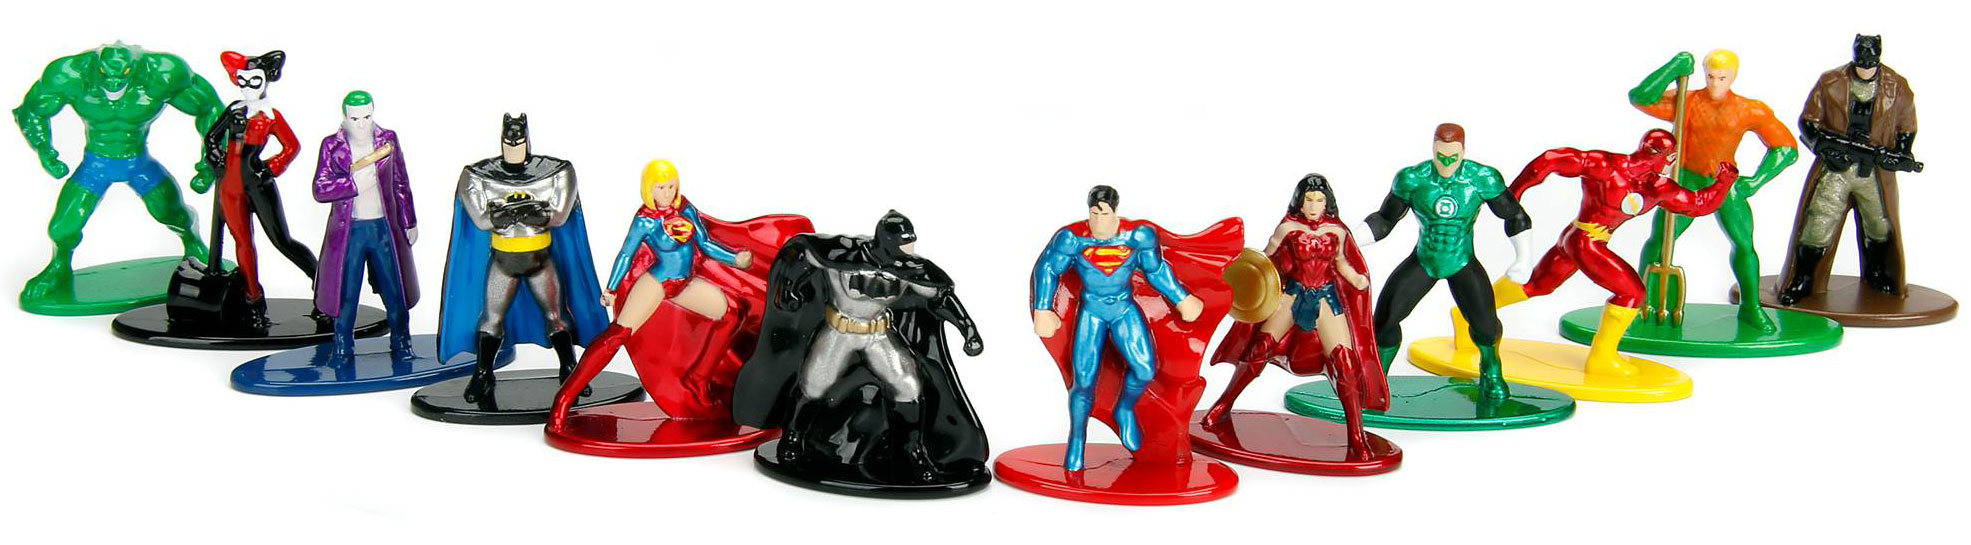 dc-comics-nano-metalfigs-diecast-mini-figures